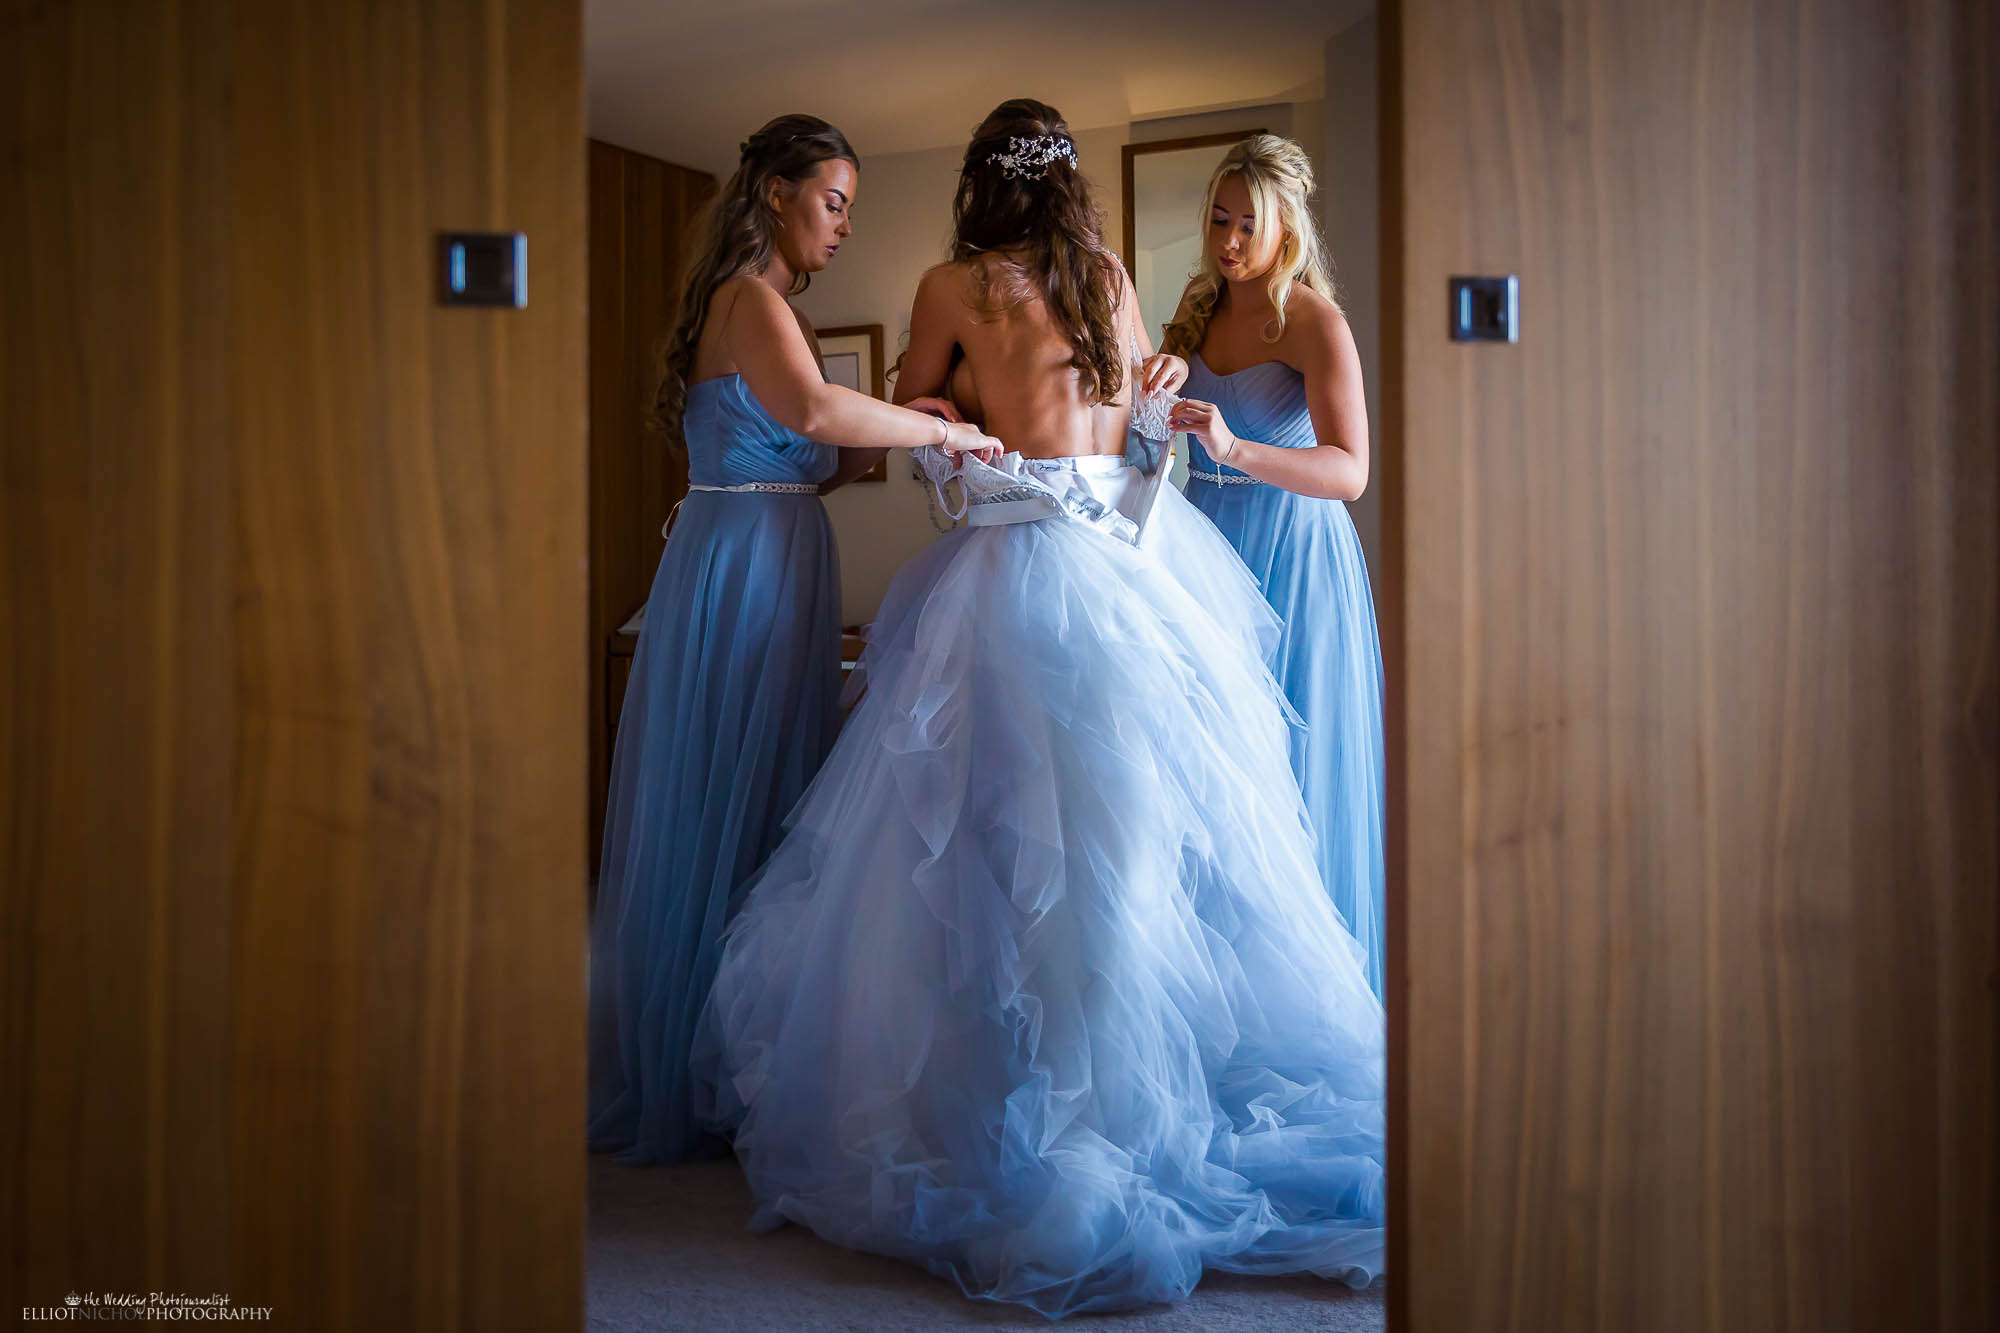 Bridal partying getting ready in their blue wedding dresses. Northeast wedding photography.